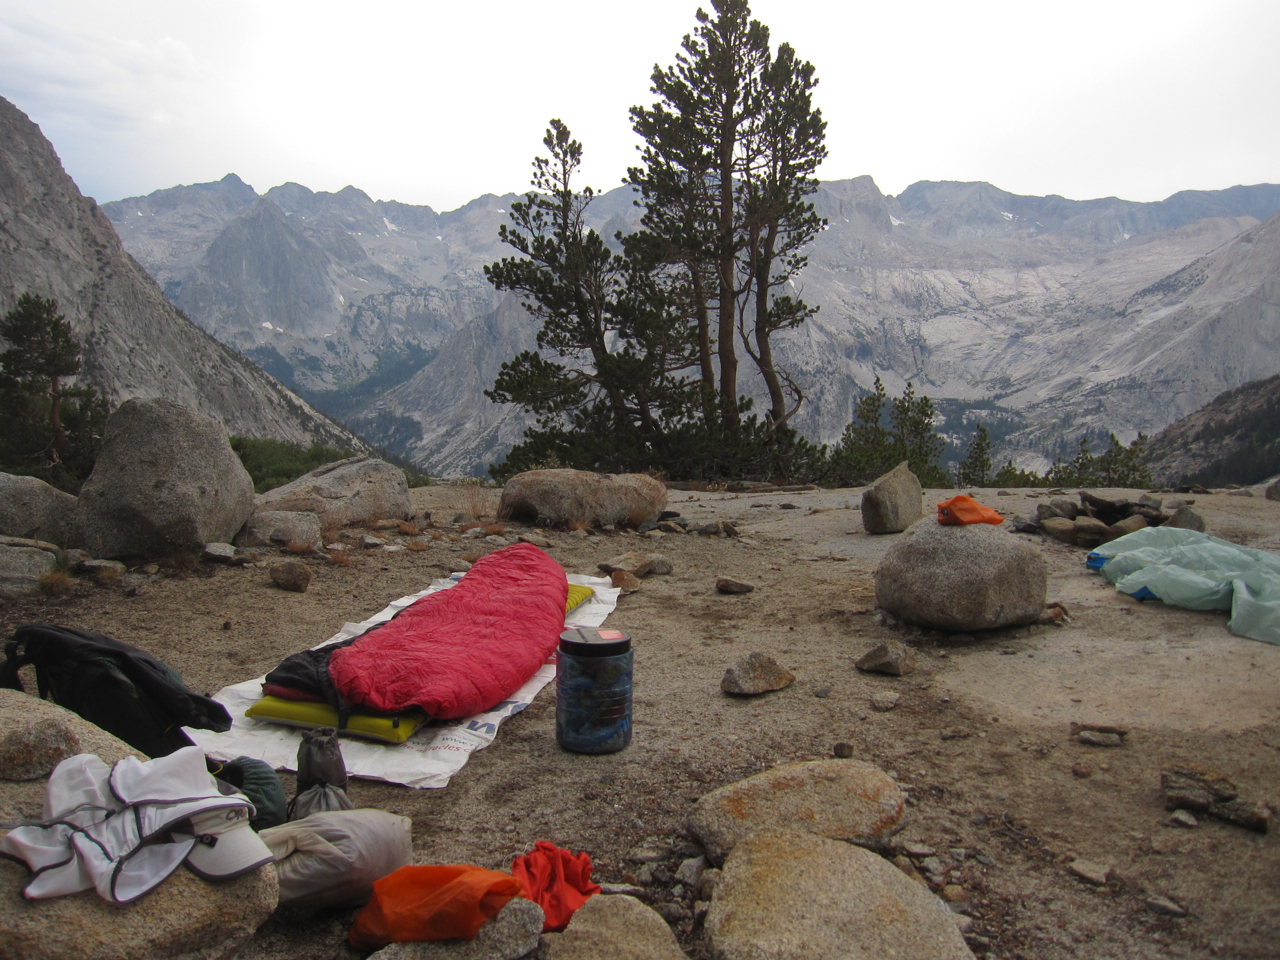 My solo camp above LeConte Canyon on the Sierra High Route. This photo was taken just before a four hour thunderstorm. I like the photo more for the location and memory than the quality of the photo itself.